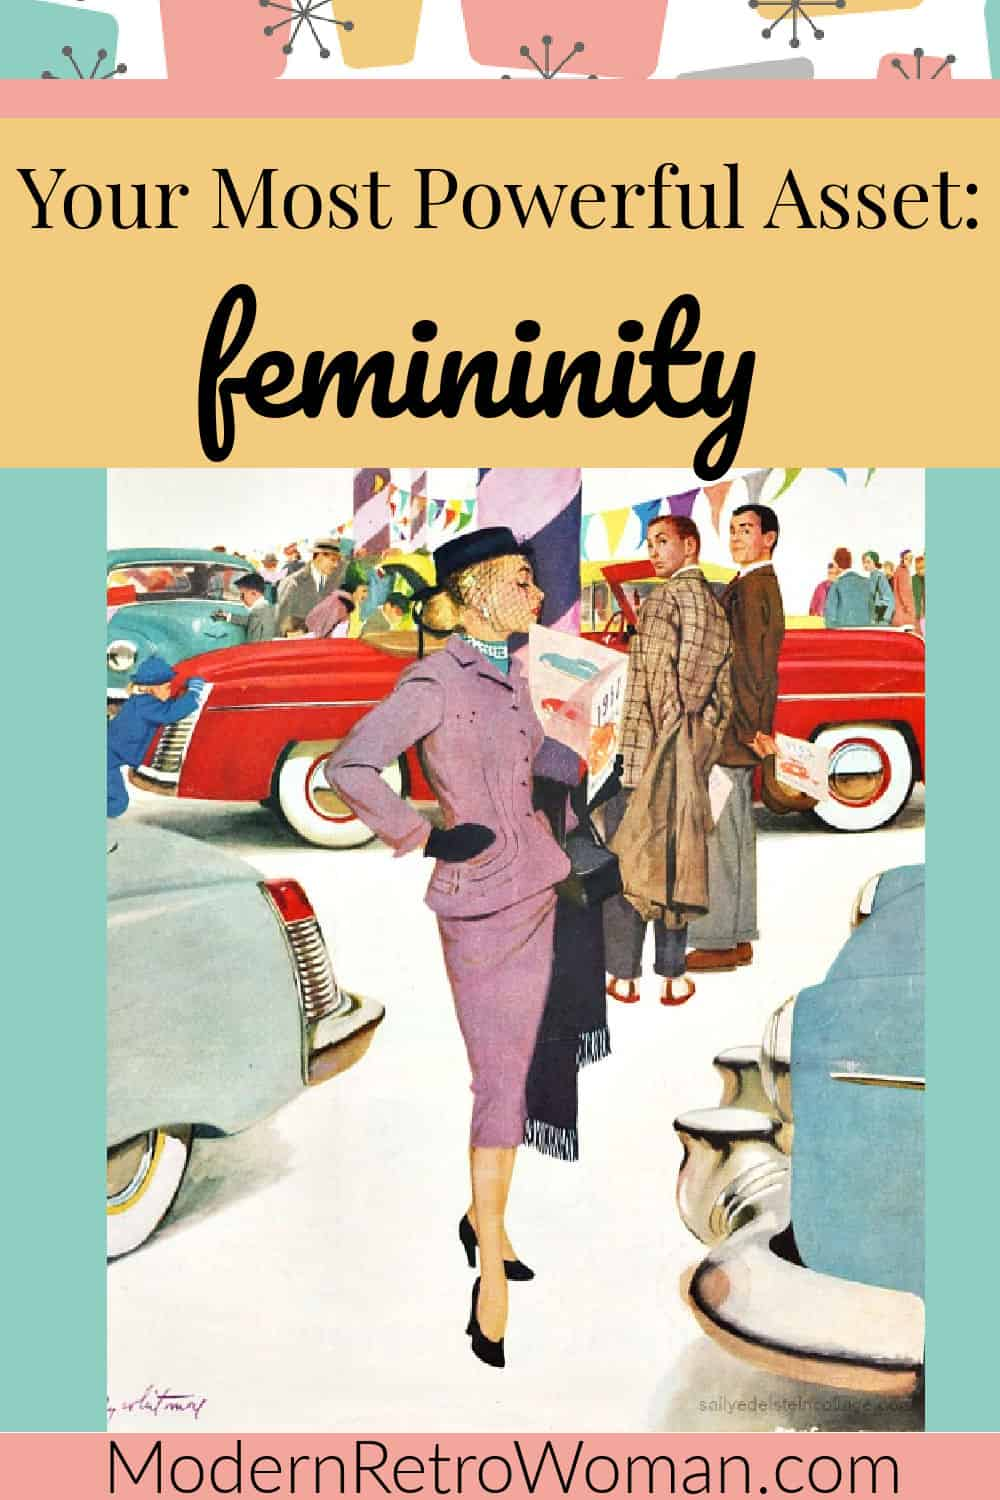 Being Feminine is Your Most Powerful Asset